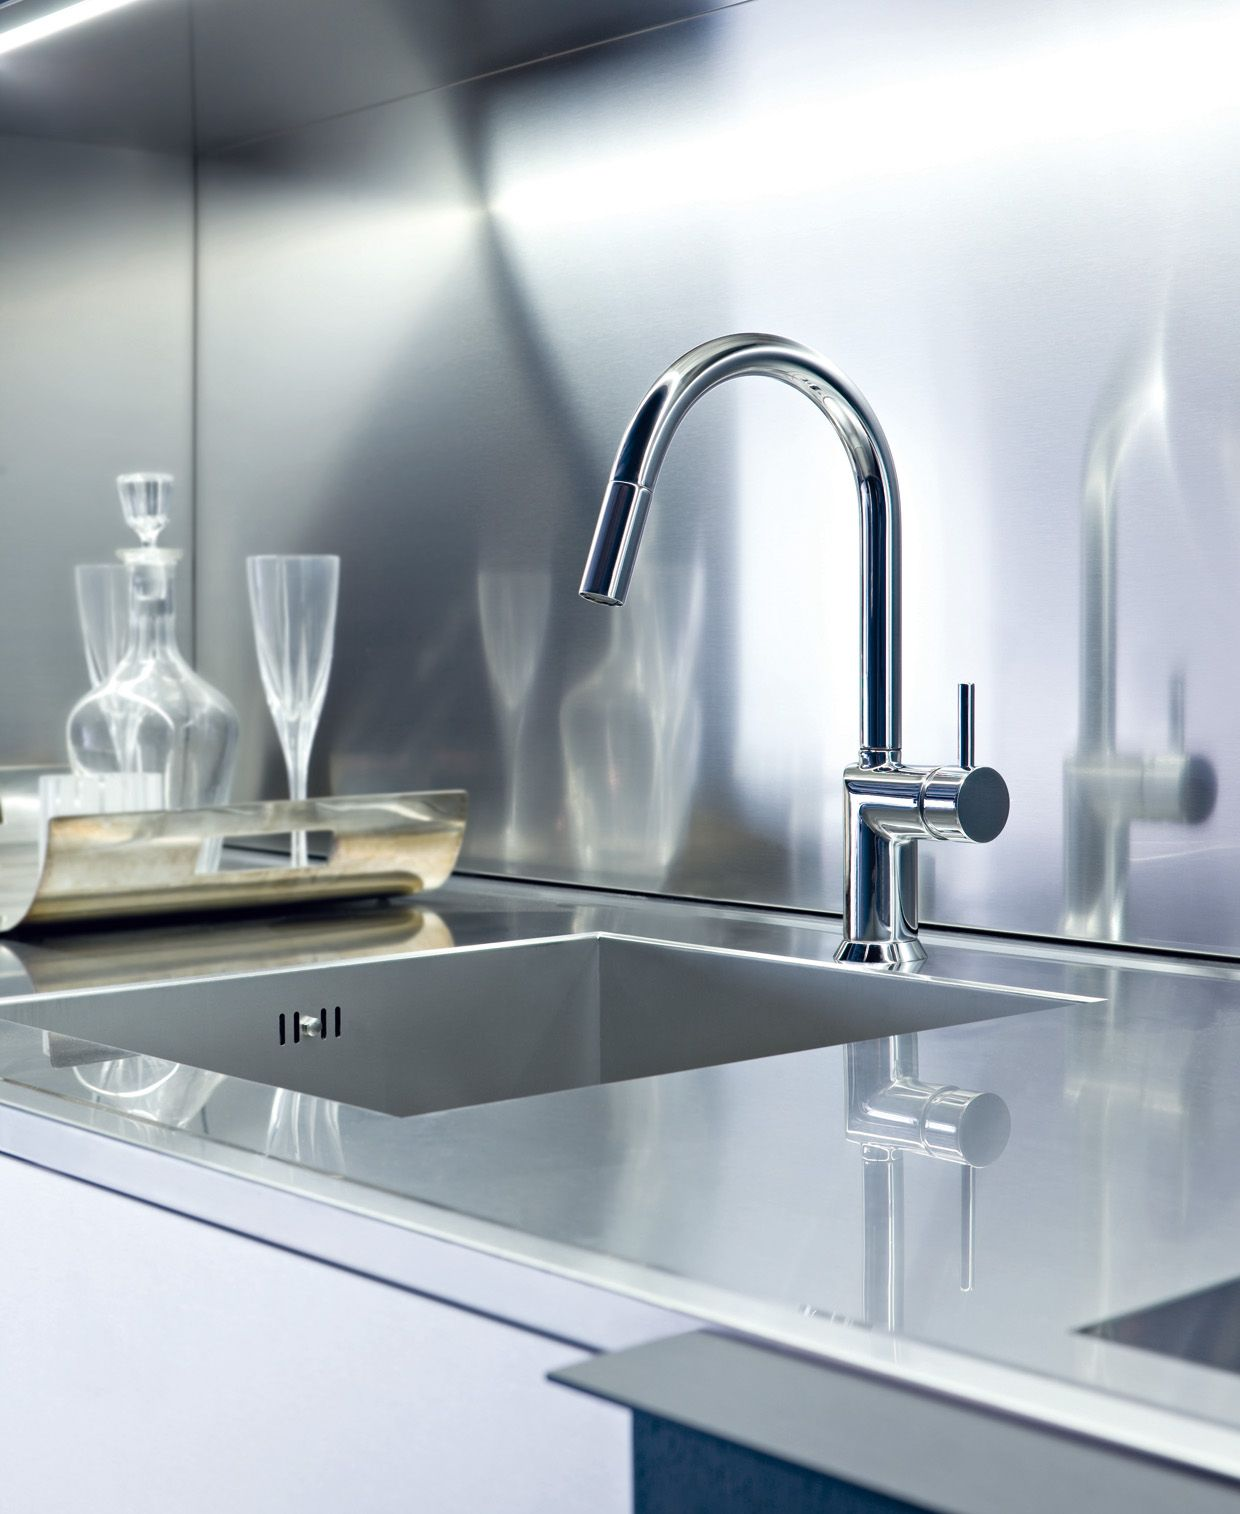 Fantini | KITCHEN and dining | Pinterest | Kitchen faucets, Faucet ...